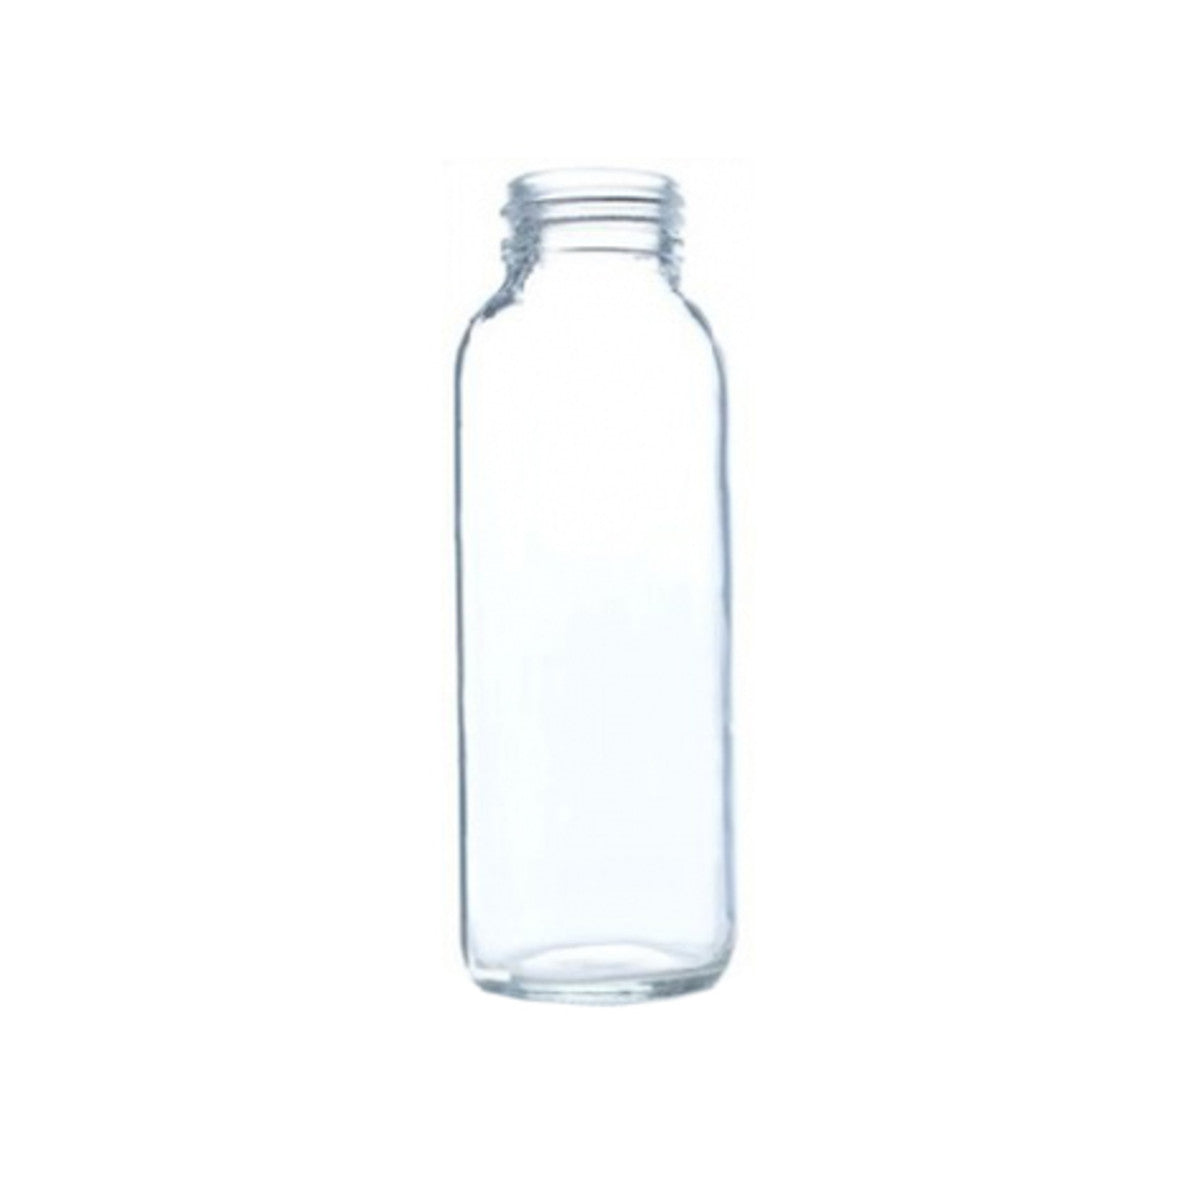 Lifefactory 9 oz Replacement Glass Bottles